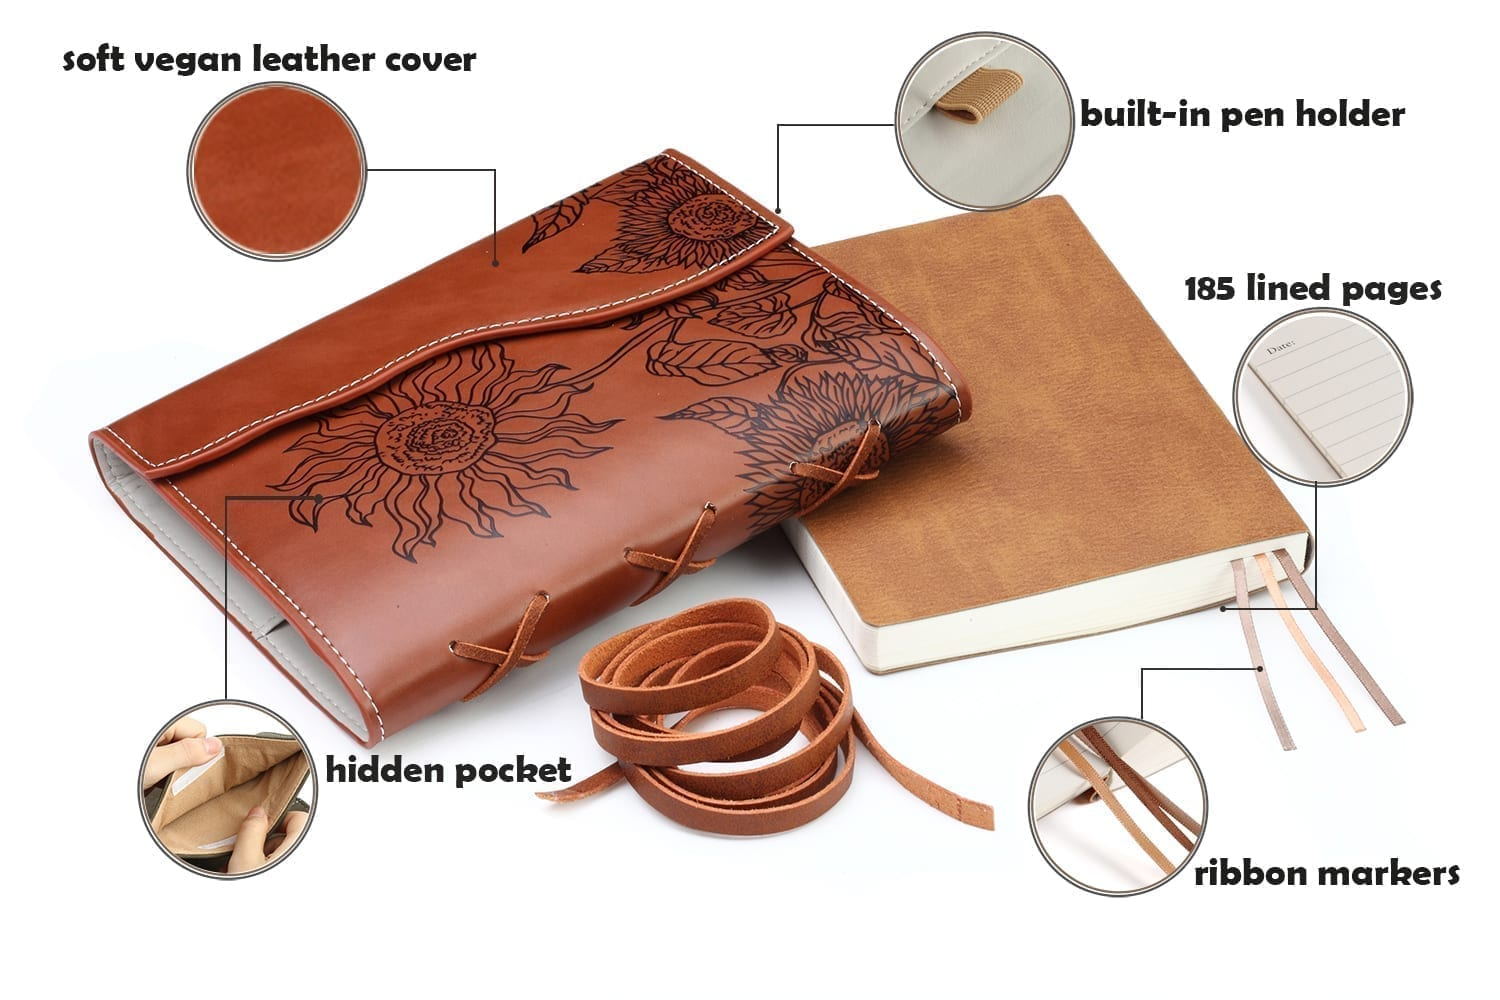 unique gifts for women-vegan leather journal lined pages engraved with sunflower